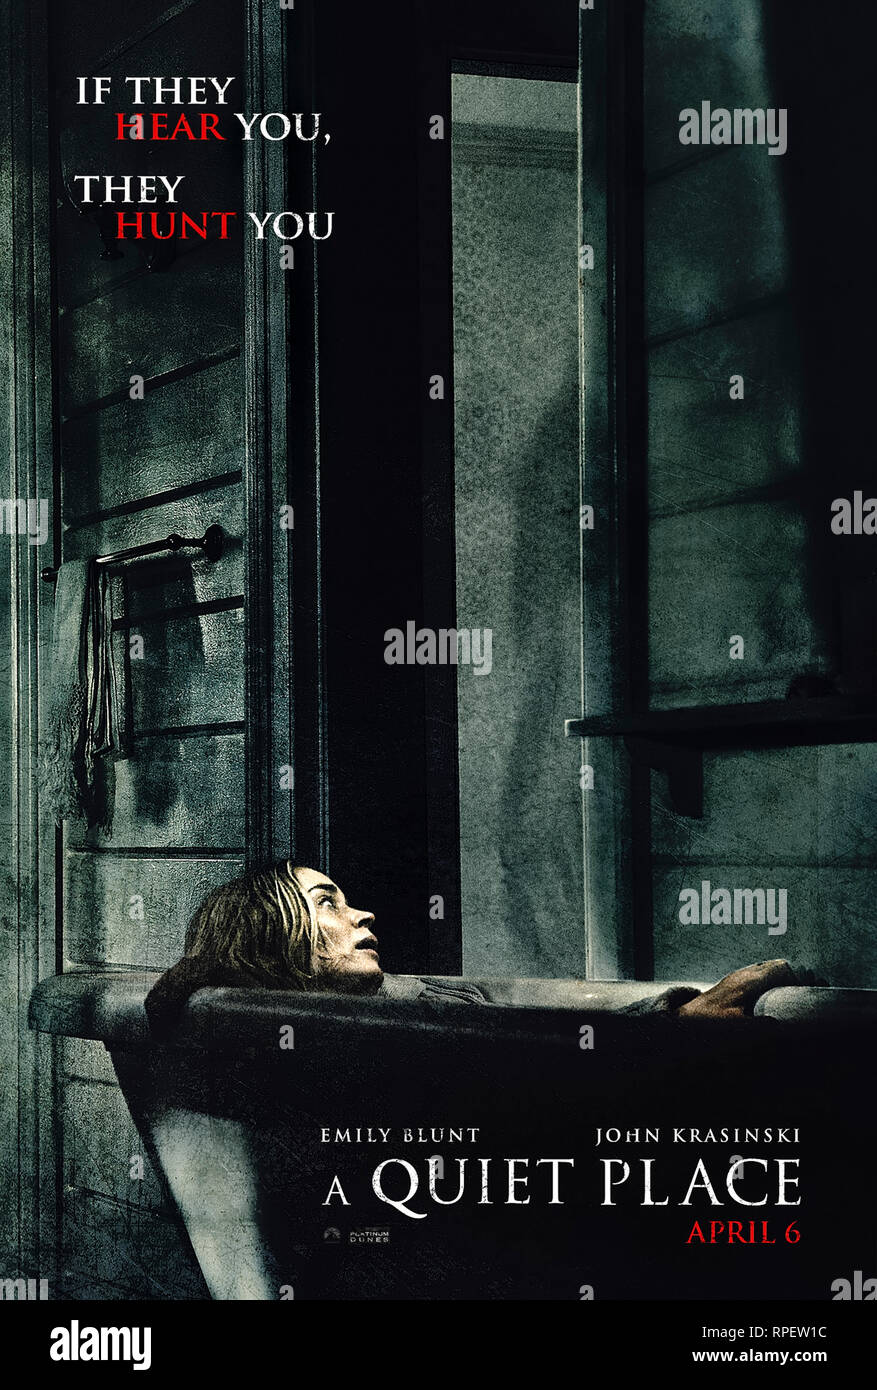 A Quiet Place (2018) directed by John Krasinski and starring Emily Blunt, John Krasinski and Millicent Simmonds. - Stock Image